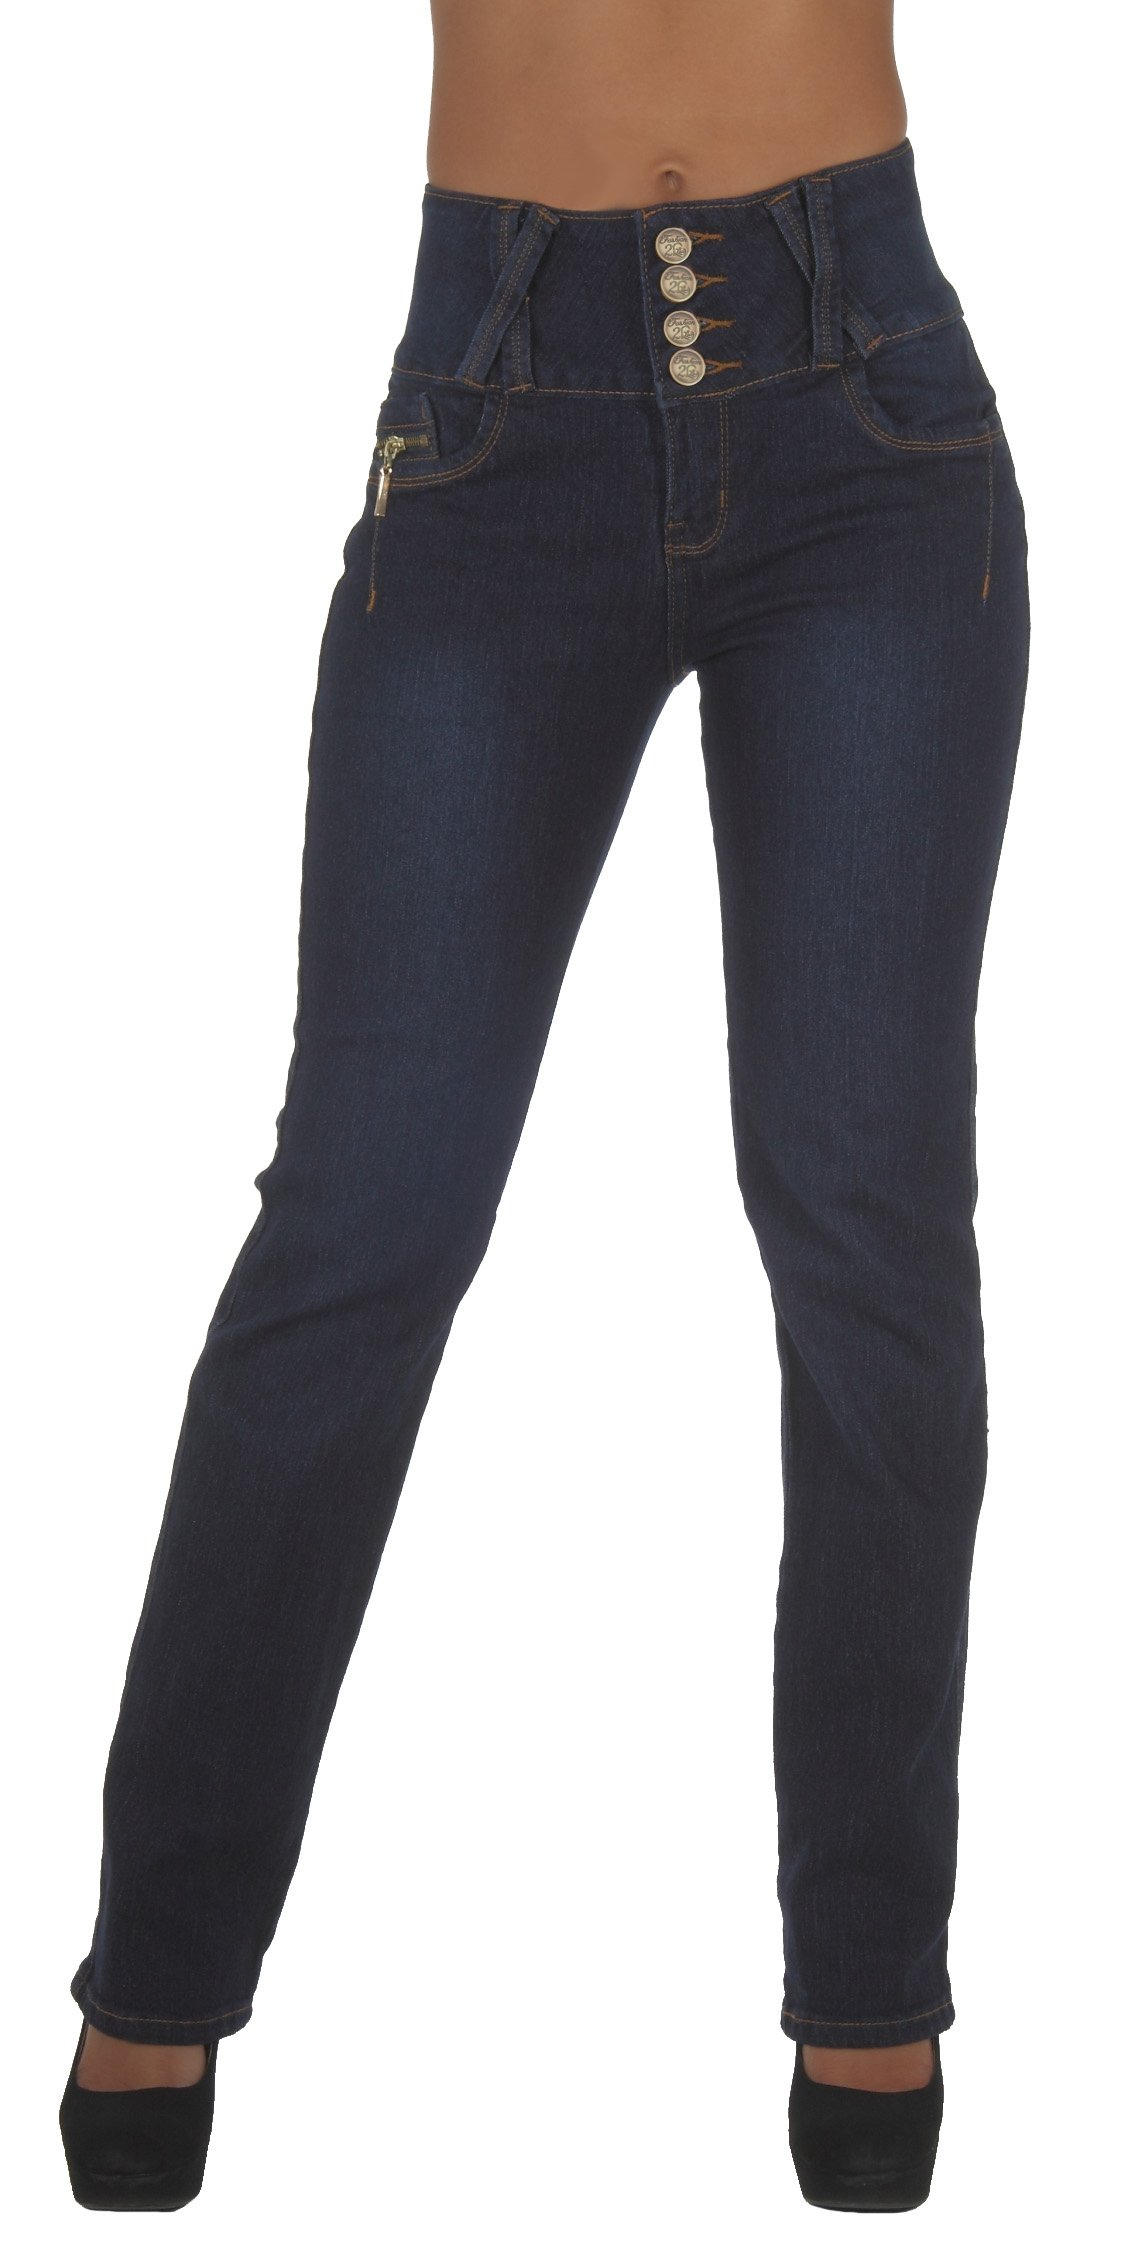 Style N545-1A-BT– Colombian Design, Butt Lift, High Waist, Boot Leg Jeans in Dark Blue Size 15